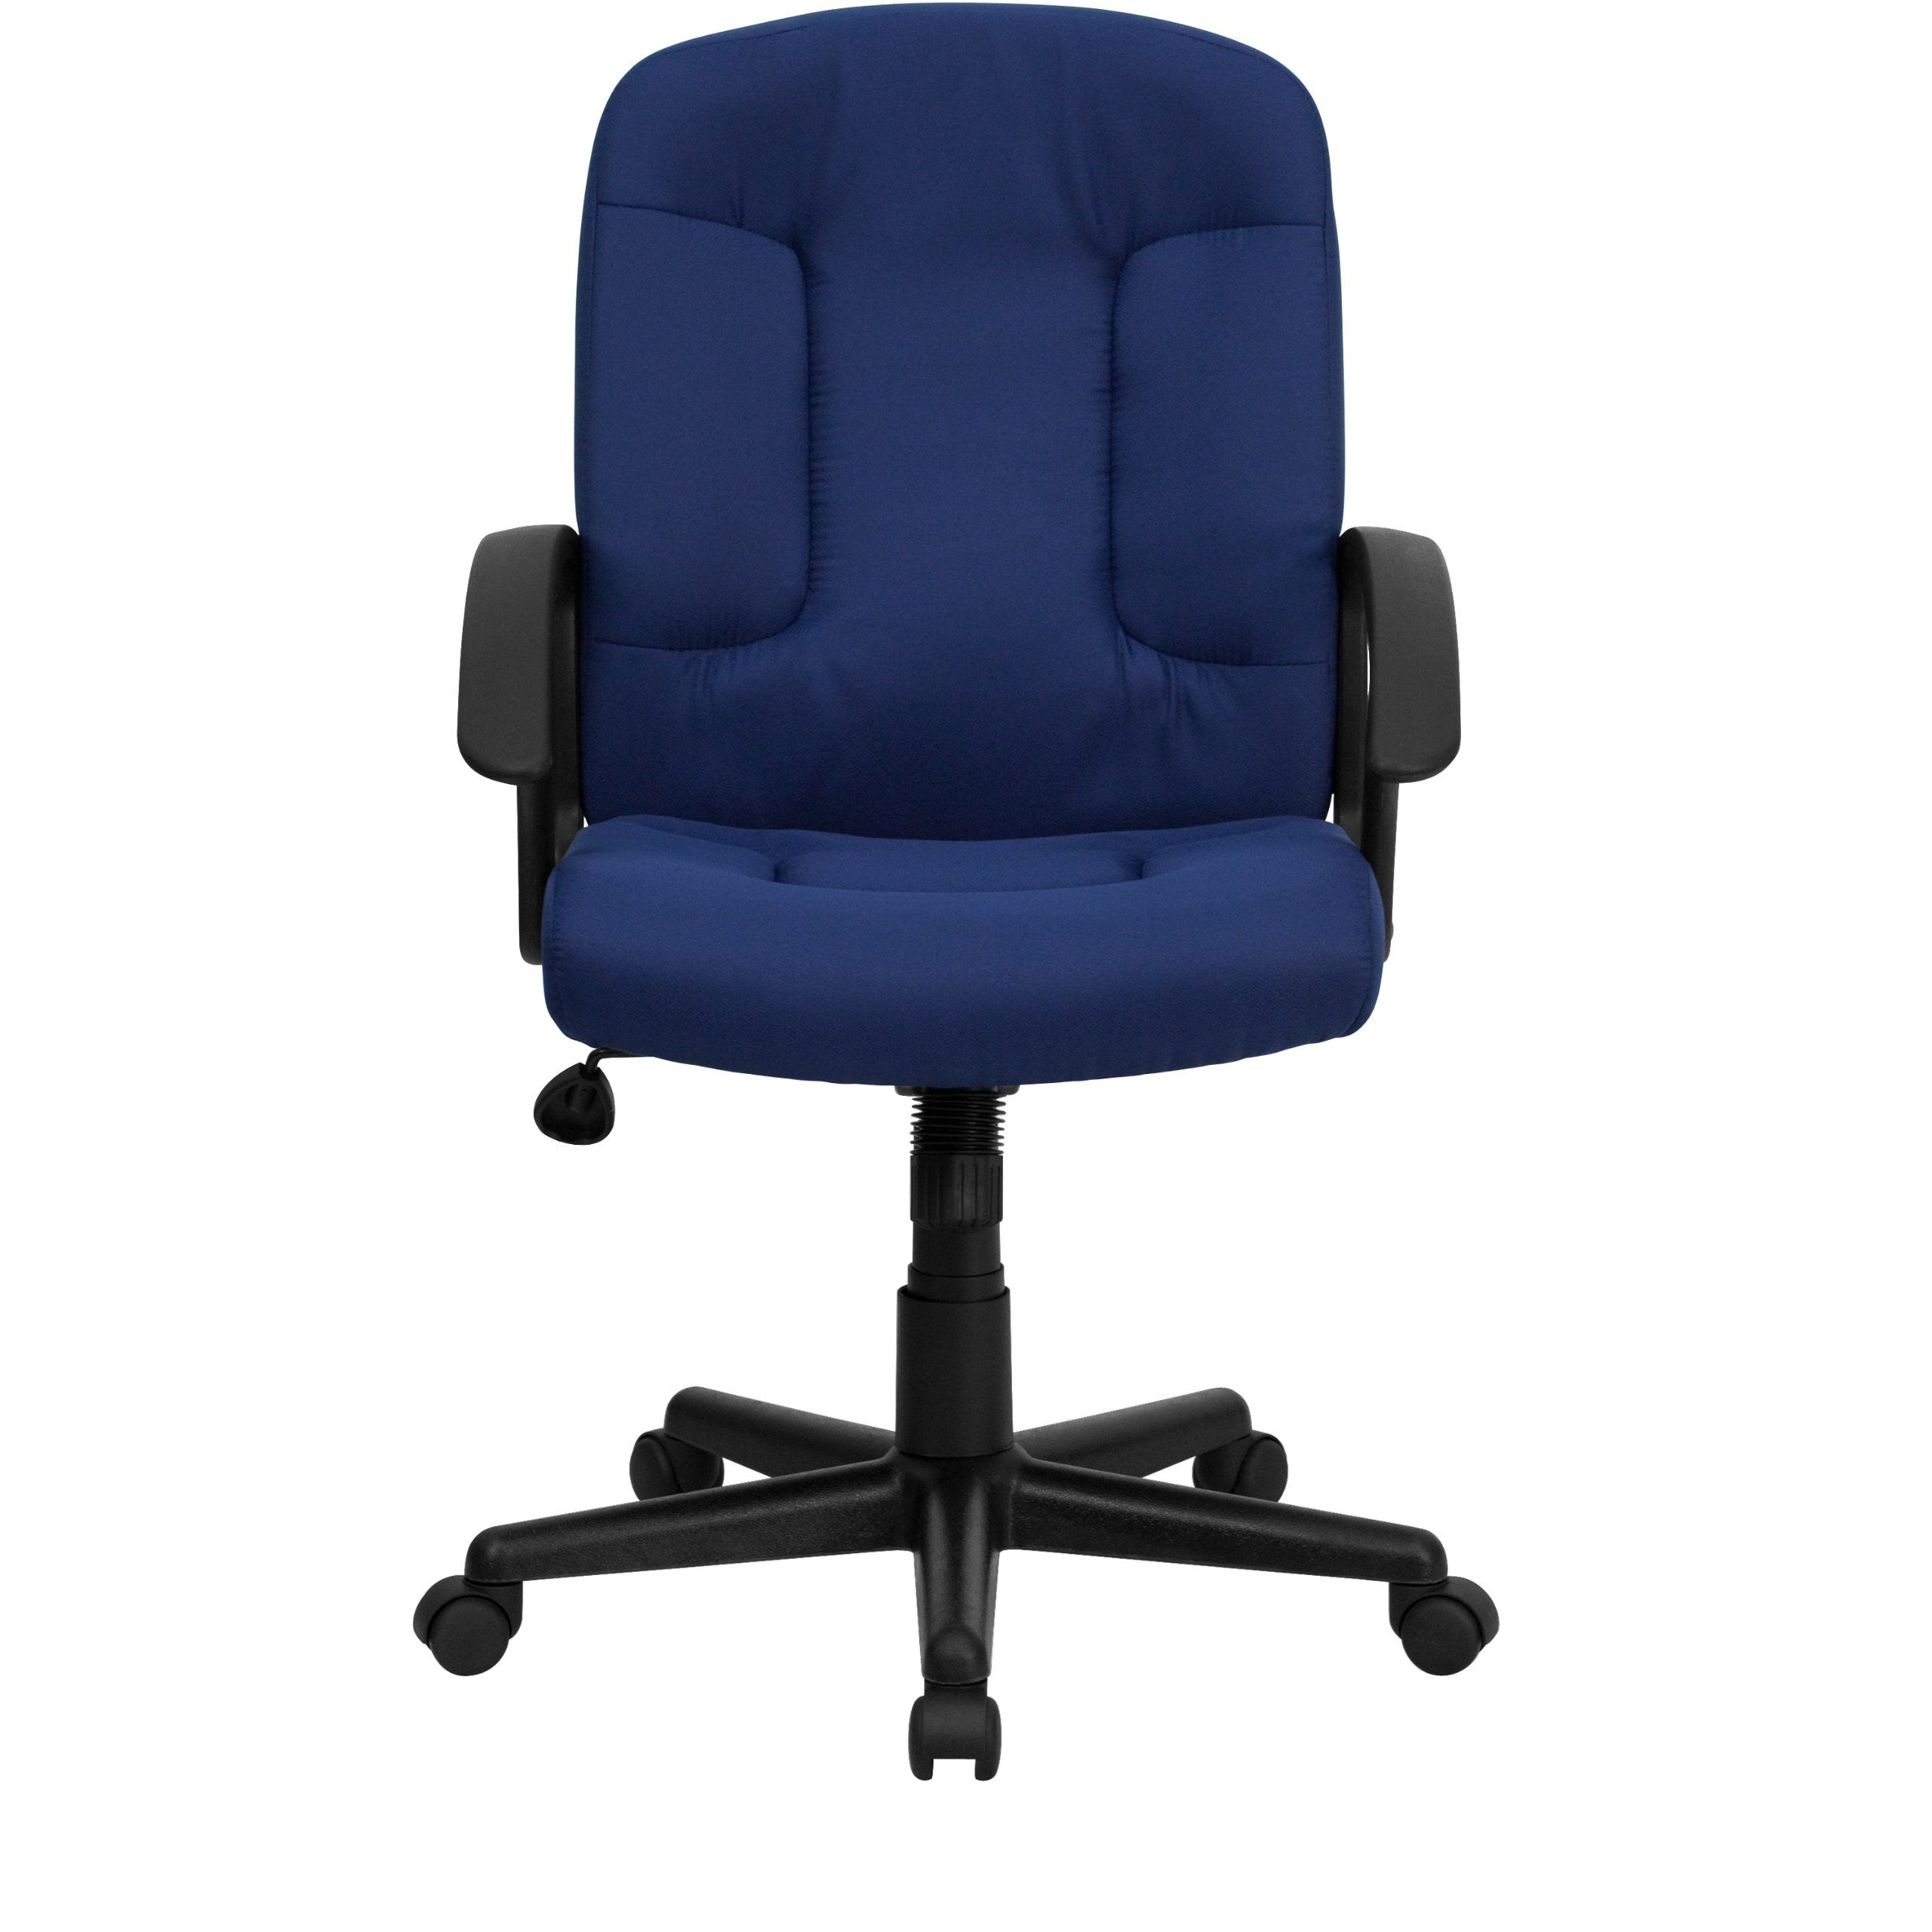 upholstered computer chair outdoor high chairs babies dark blue electra desk read more at the image link it is amazon affiliate officechairsideas